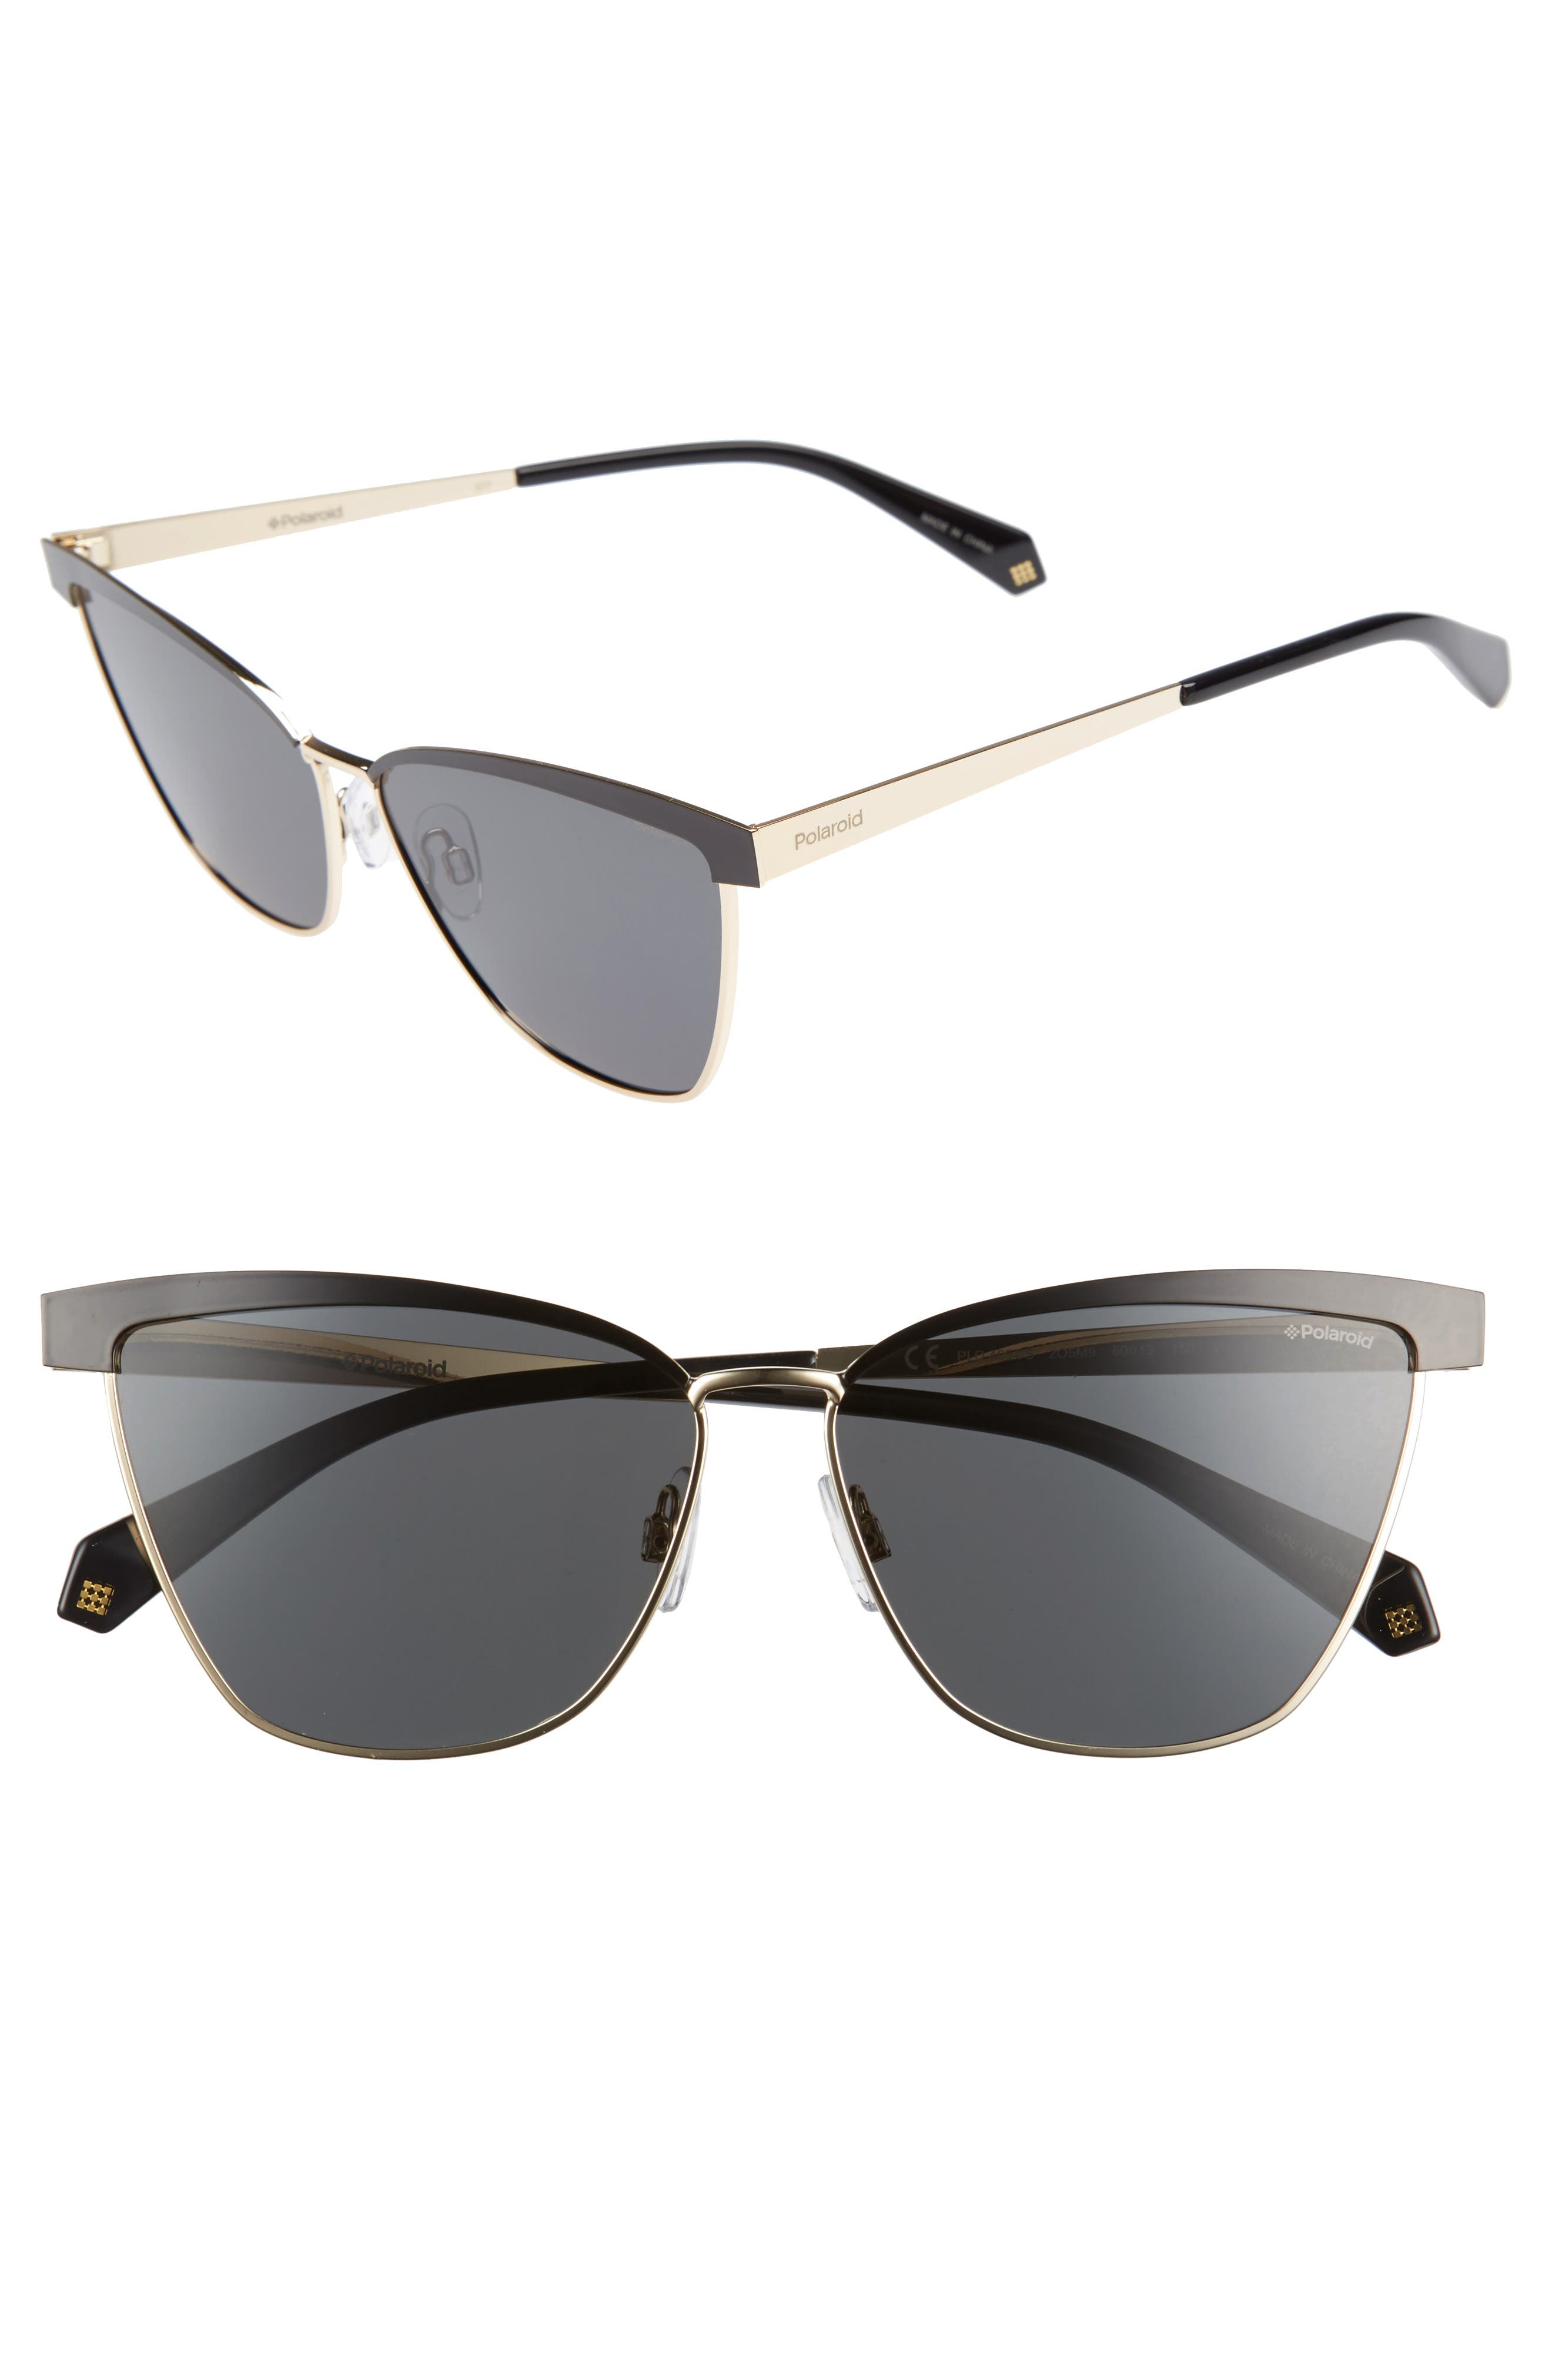 60mm Polarized Cat Eye Sunglasses,                         Main,                         color, 001